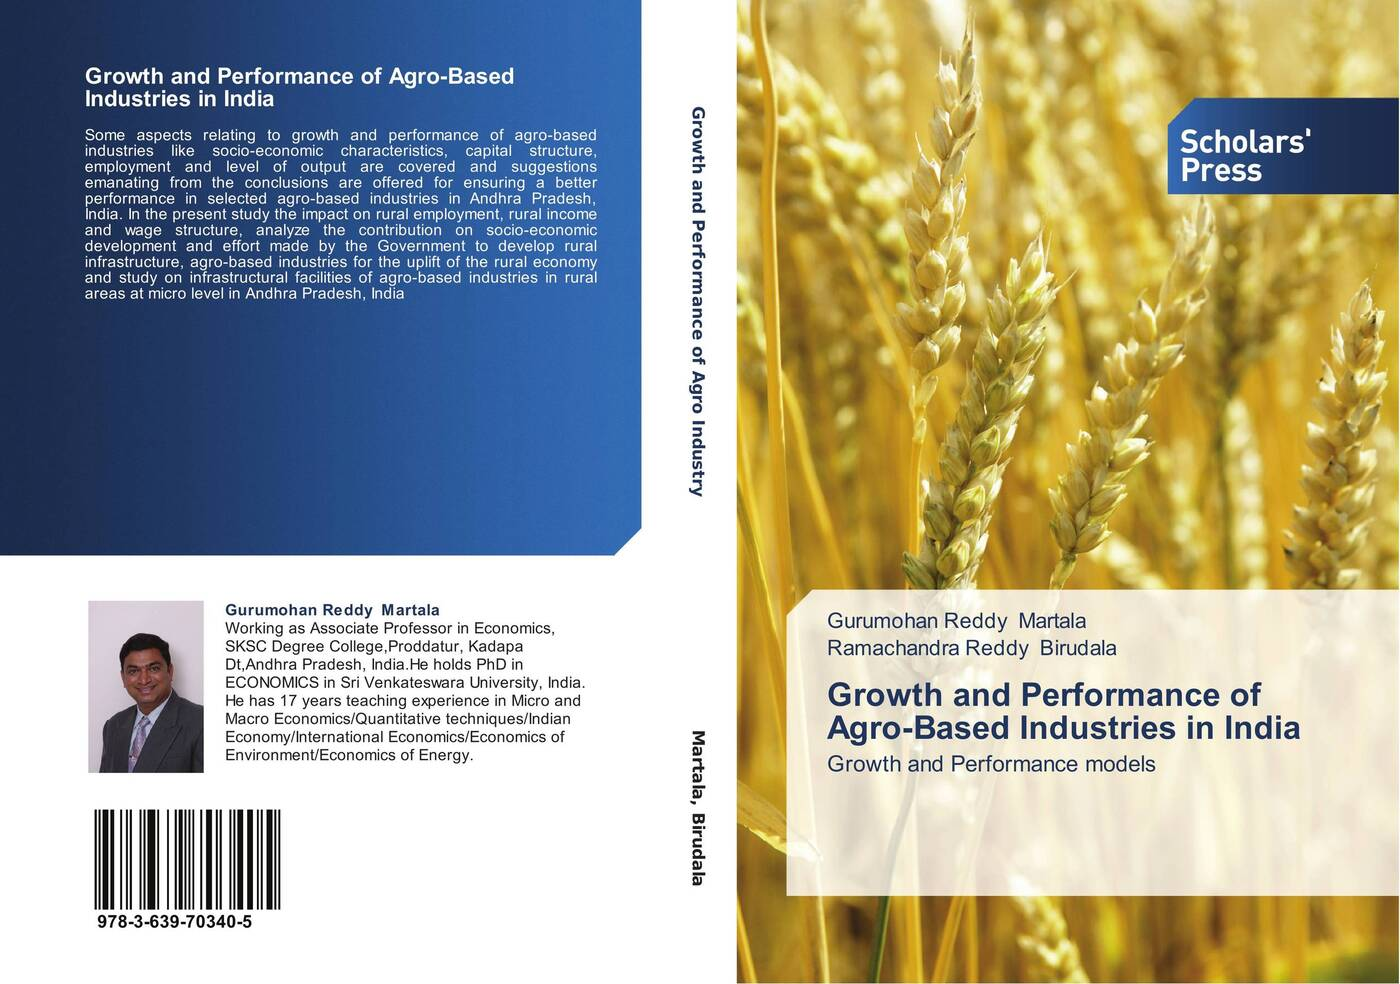 купить Gurumohan Reddy Martala and Ramachandra Reddy Birudala Growth and Performance of Agro-Based Industries in India по цене 7533 рублей